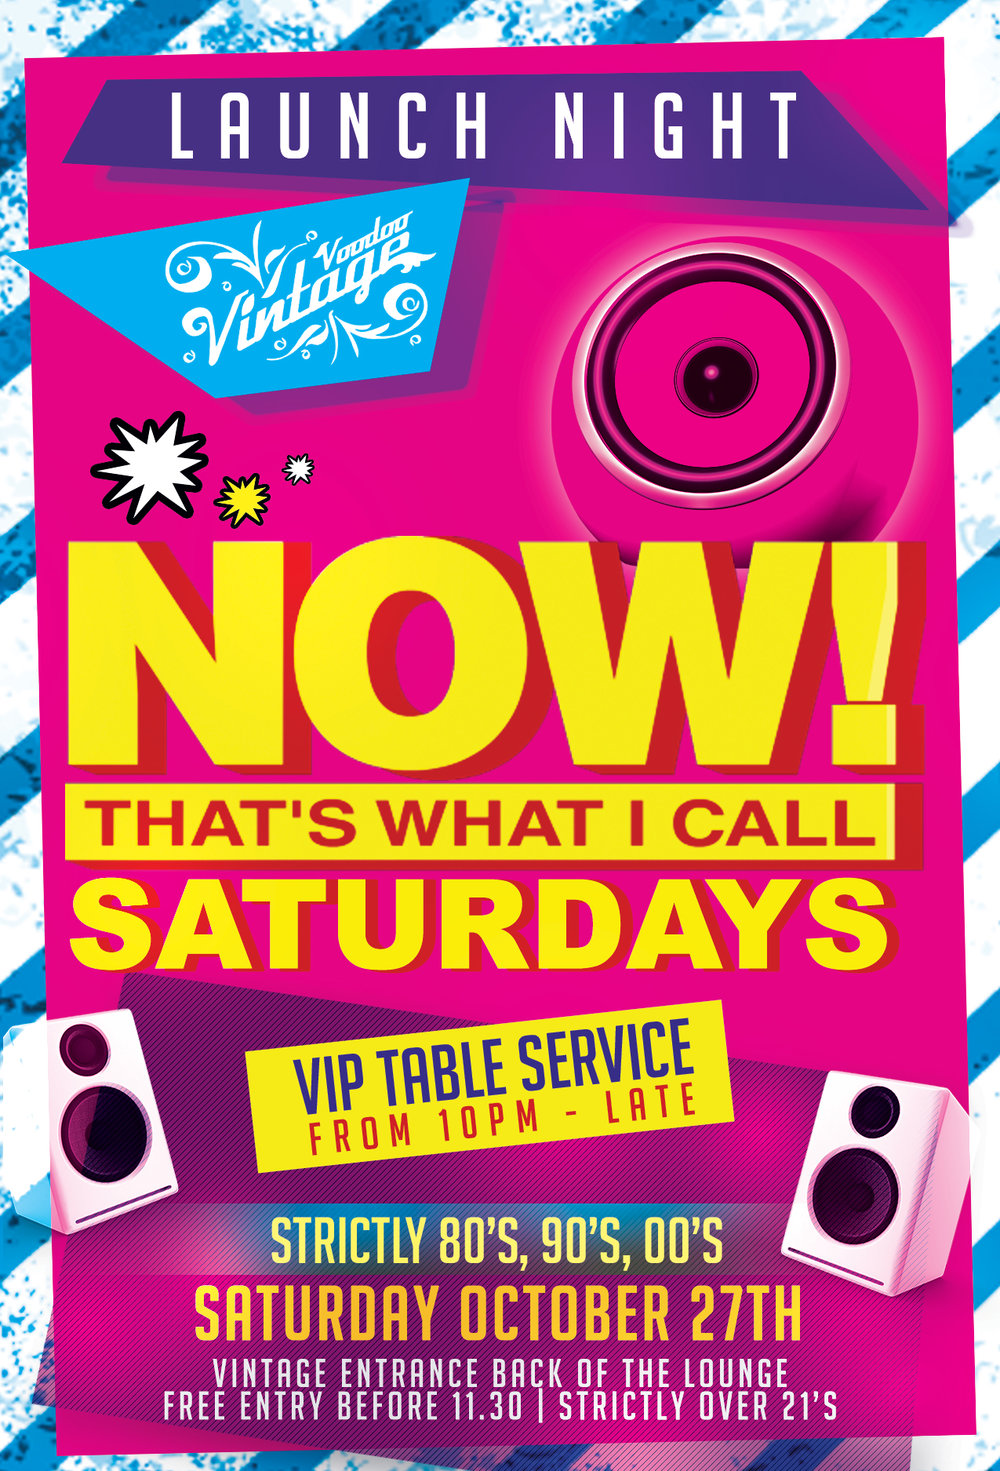 voodoo-vintage-now-thats-what-i-call-saturdays-launch-flyer-sat-oct-26-2018.jpg